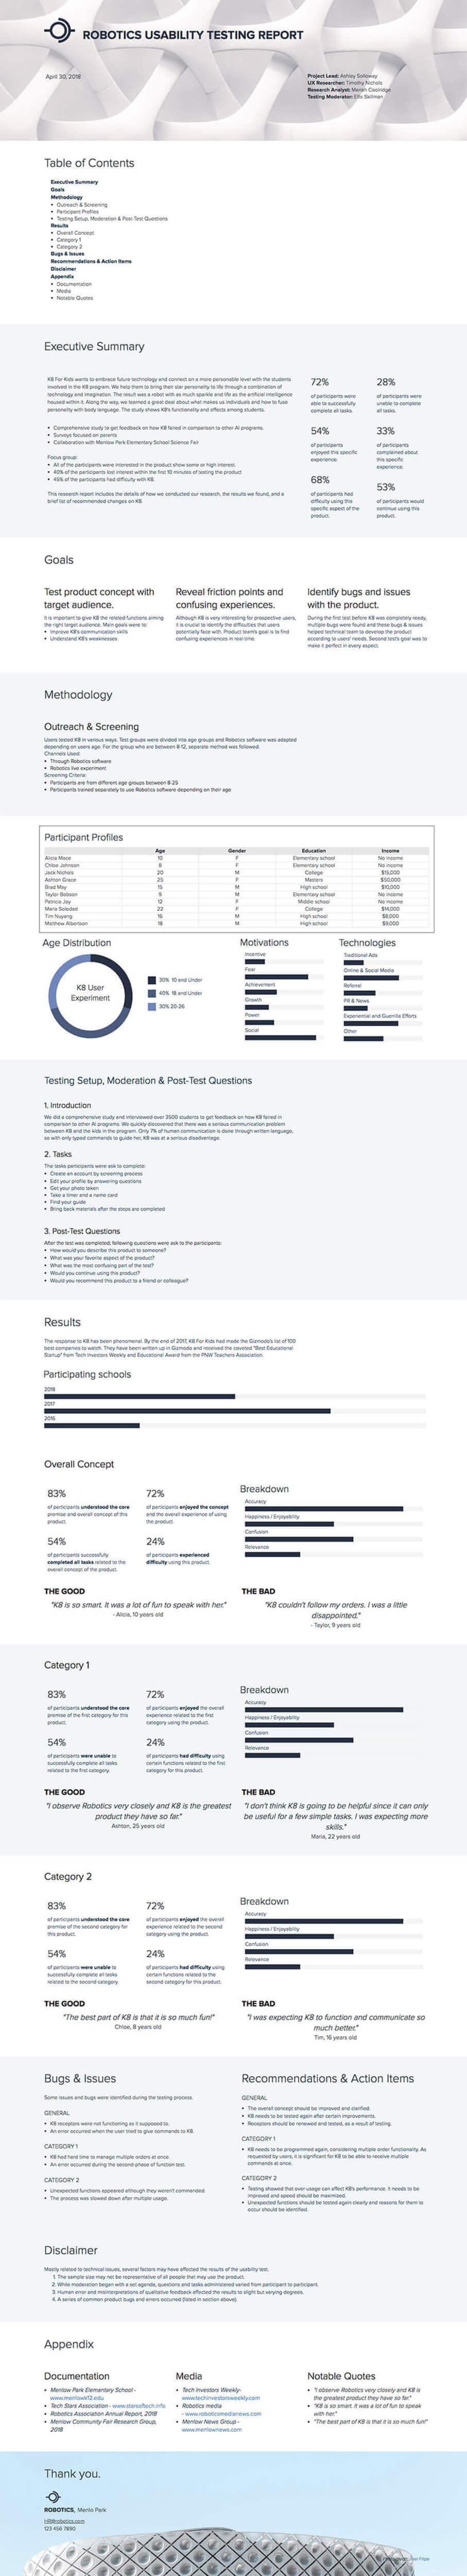 How To Write A Usability Testing Report (With Samples Within Usability Test Report Template